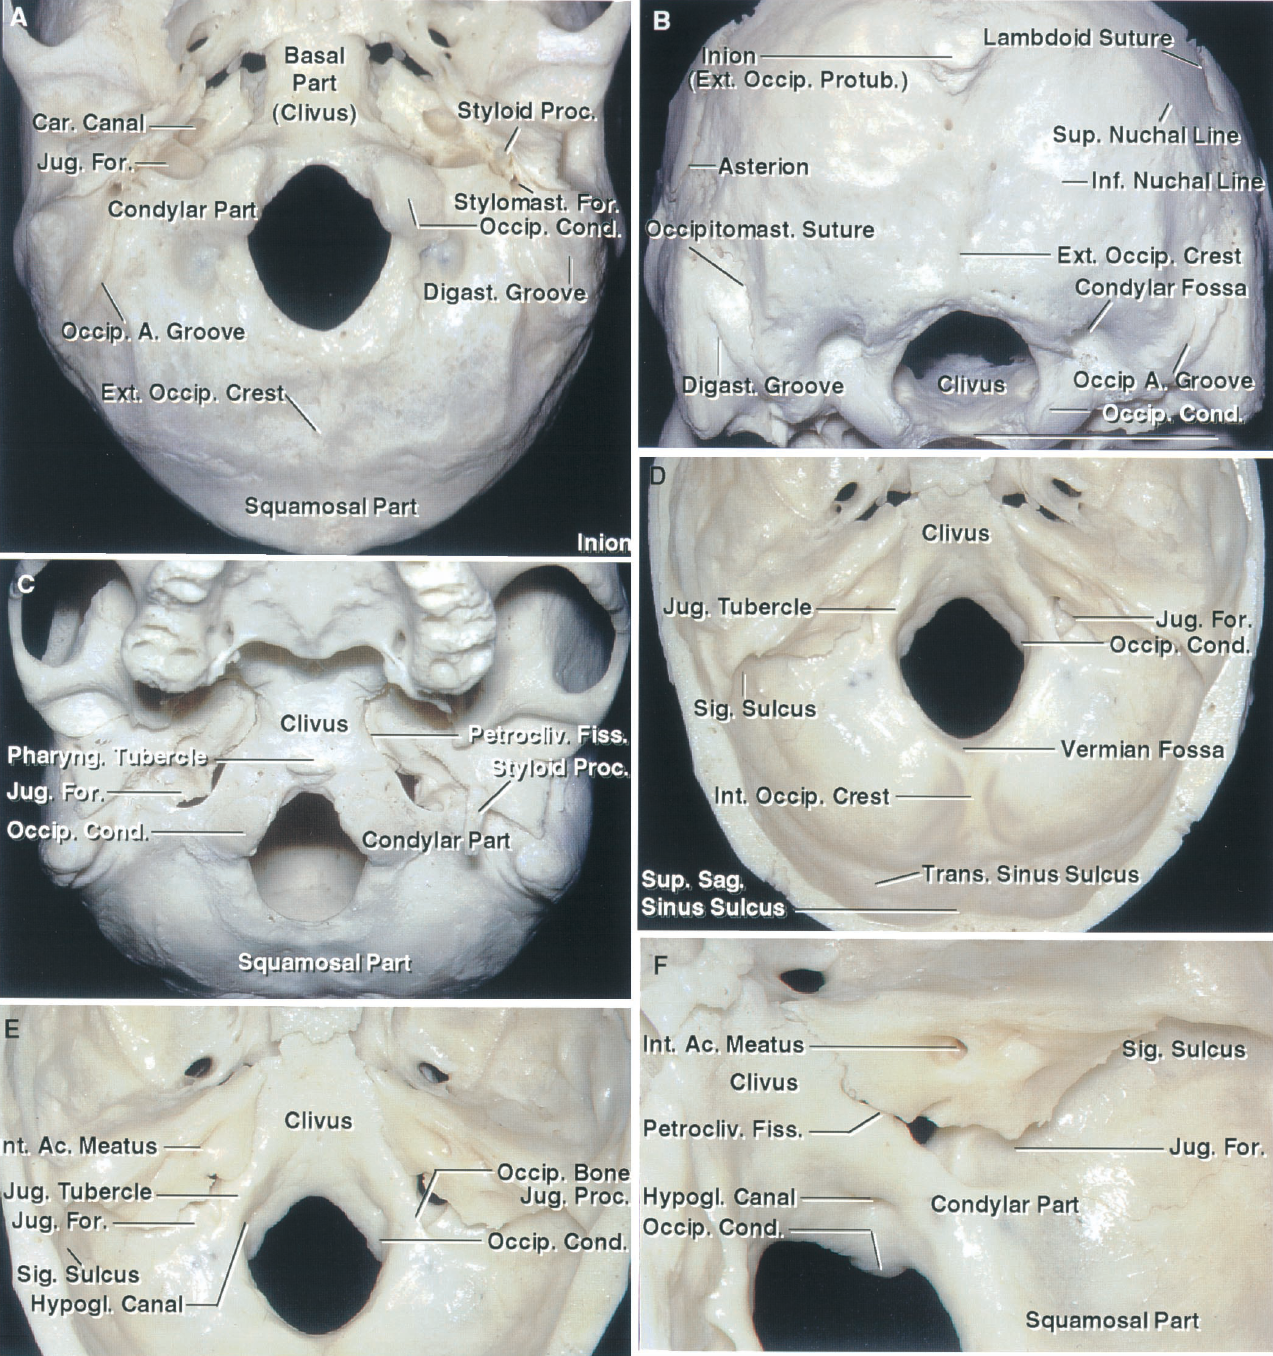 FIGURE 6.1. Occipital bone and foramen magnum. A, inferior view. B, posteroinferior view. C, anterior-inferior view. D, superior view. E, posterosuperior view. F, oblique posterosuperior view. The occipital bone surrounds the oval-shaped foramen magnum, which is wider posteriorly than anteriorly. The narrower anterior part sits above the odontoid process and it encroached on from laterally by the occipital condyles. The wider posterior part transmits the medulla. The occipital bone is divided into a squamosal part located above and behind the foramen magnum; a basal (clival) part situated in front of the foramen magnum; and paired condylar parts located lateral to the foramen magnum. The squamous part is internally concave. Its upper margin articulates with the parietal bone at the lambdoid suture, and its lower margin articulates with the mastoid portion of the temporal bone at the occipitomastoid suture. The convex external surface of the squamosal part has several prominences. The largest prominence, the external occipital protuberance (inion), is situated at the central part of the external surface. The superior nuchal line radiates laterally from the protuberance. A vertical ridge, the external occipital crest, descends from the external occipital protuberance to the midpoint of the posterior margin of the foramen magnum. The inferior nuchal lines run laterally on both sides from the midpoint of the crest. The internal surface of the squamous part is concave and has a prominence, the internal occipital protuberance, near its center. The internal surface is divided into four unequal fossae by the sulcus of the superior sagittal sinus, the internal occipital crest, and the sulci for the transverse sinuses. The internal occipital crest bifurcates above the foramen magnum to form a V-shaped ridge between the limbs of which is the vermian fossa. The basilar part of the occipital bone, which is also referred to as the clivus, is a thick quadrangular plate of bone that extends forward and upward to join the sphenoid bone just below the dorsum sellae. The superior surface of the clivus slopes upward from the foramen magnum and is concave from side to side. The clivus is separated on each side from the petrous part of the temporal bone by the petroclival fissure that ends posteriorly at the jugular foramen. The occipitomastoid suture extends posterolateral from the jugular foramen. On the inferior surface of the basilar part, a small elevation, the pharyngeal tubercle, gives attachment to the fibrous raphe of the pharynx. The condylar parts of the occipital bone, on which the occipital condyles an located, are situated lateral to the foramen magnum on the external surface. The alar tubercle, which gives attachment to the alar ligament, is situated on the medial side of each condyle. The hypoglossal canal is situated above the condyle. The condylar fossa, which may be converted into a foramen for the passage of an emissary vein, is located behind the condyle. The jugular process of the occipital bone extends laterally from the posterior half of the condyle and articulates with the jugular surface of the temporal bone. The sulcus of the sigmoid sinus crosses the superior surface of the jugular process. The jugular foramen is bordered posteriorly by the jugular process of the occipital bone and anteriorly by the jugular fossa of the petrous temporal bone. The jugular tubercle lies on the internal surface above the hypoglossal canal. A., artery; Ac., acoustic; Car., carotid; Cond., condyle; Digast., digastric; Ext., external; Fiss., fissure; For., foramen; Hypogl., hypoglossal; Inf., inferior; Jug., jugular; Occipitomast., occipitomastoid; Occip., occipital; Petrocliv., petroclival; Pharyng., pharyngeal; Proc., process; Protrub., protuberance; Sag., sagittal; Sig., sigmoid; Sup., superior; Trans., transverse.